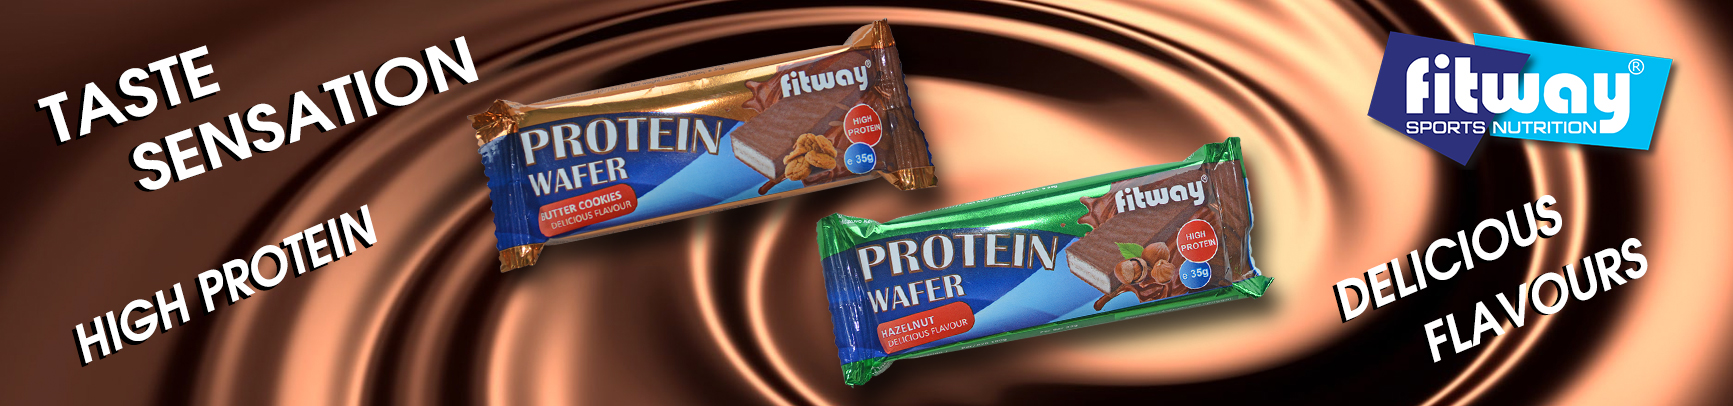 fw protein bars